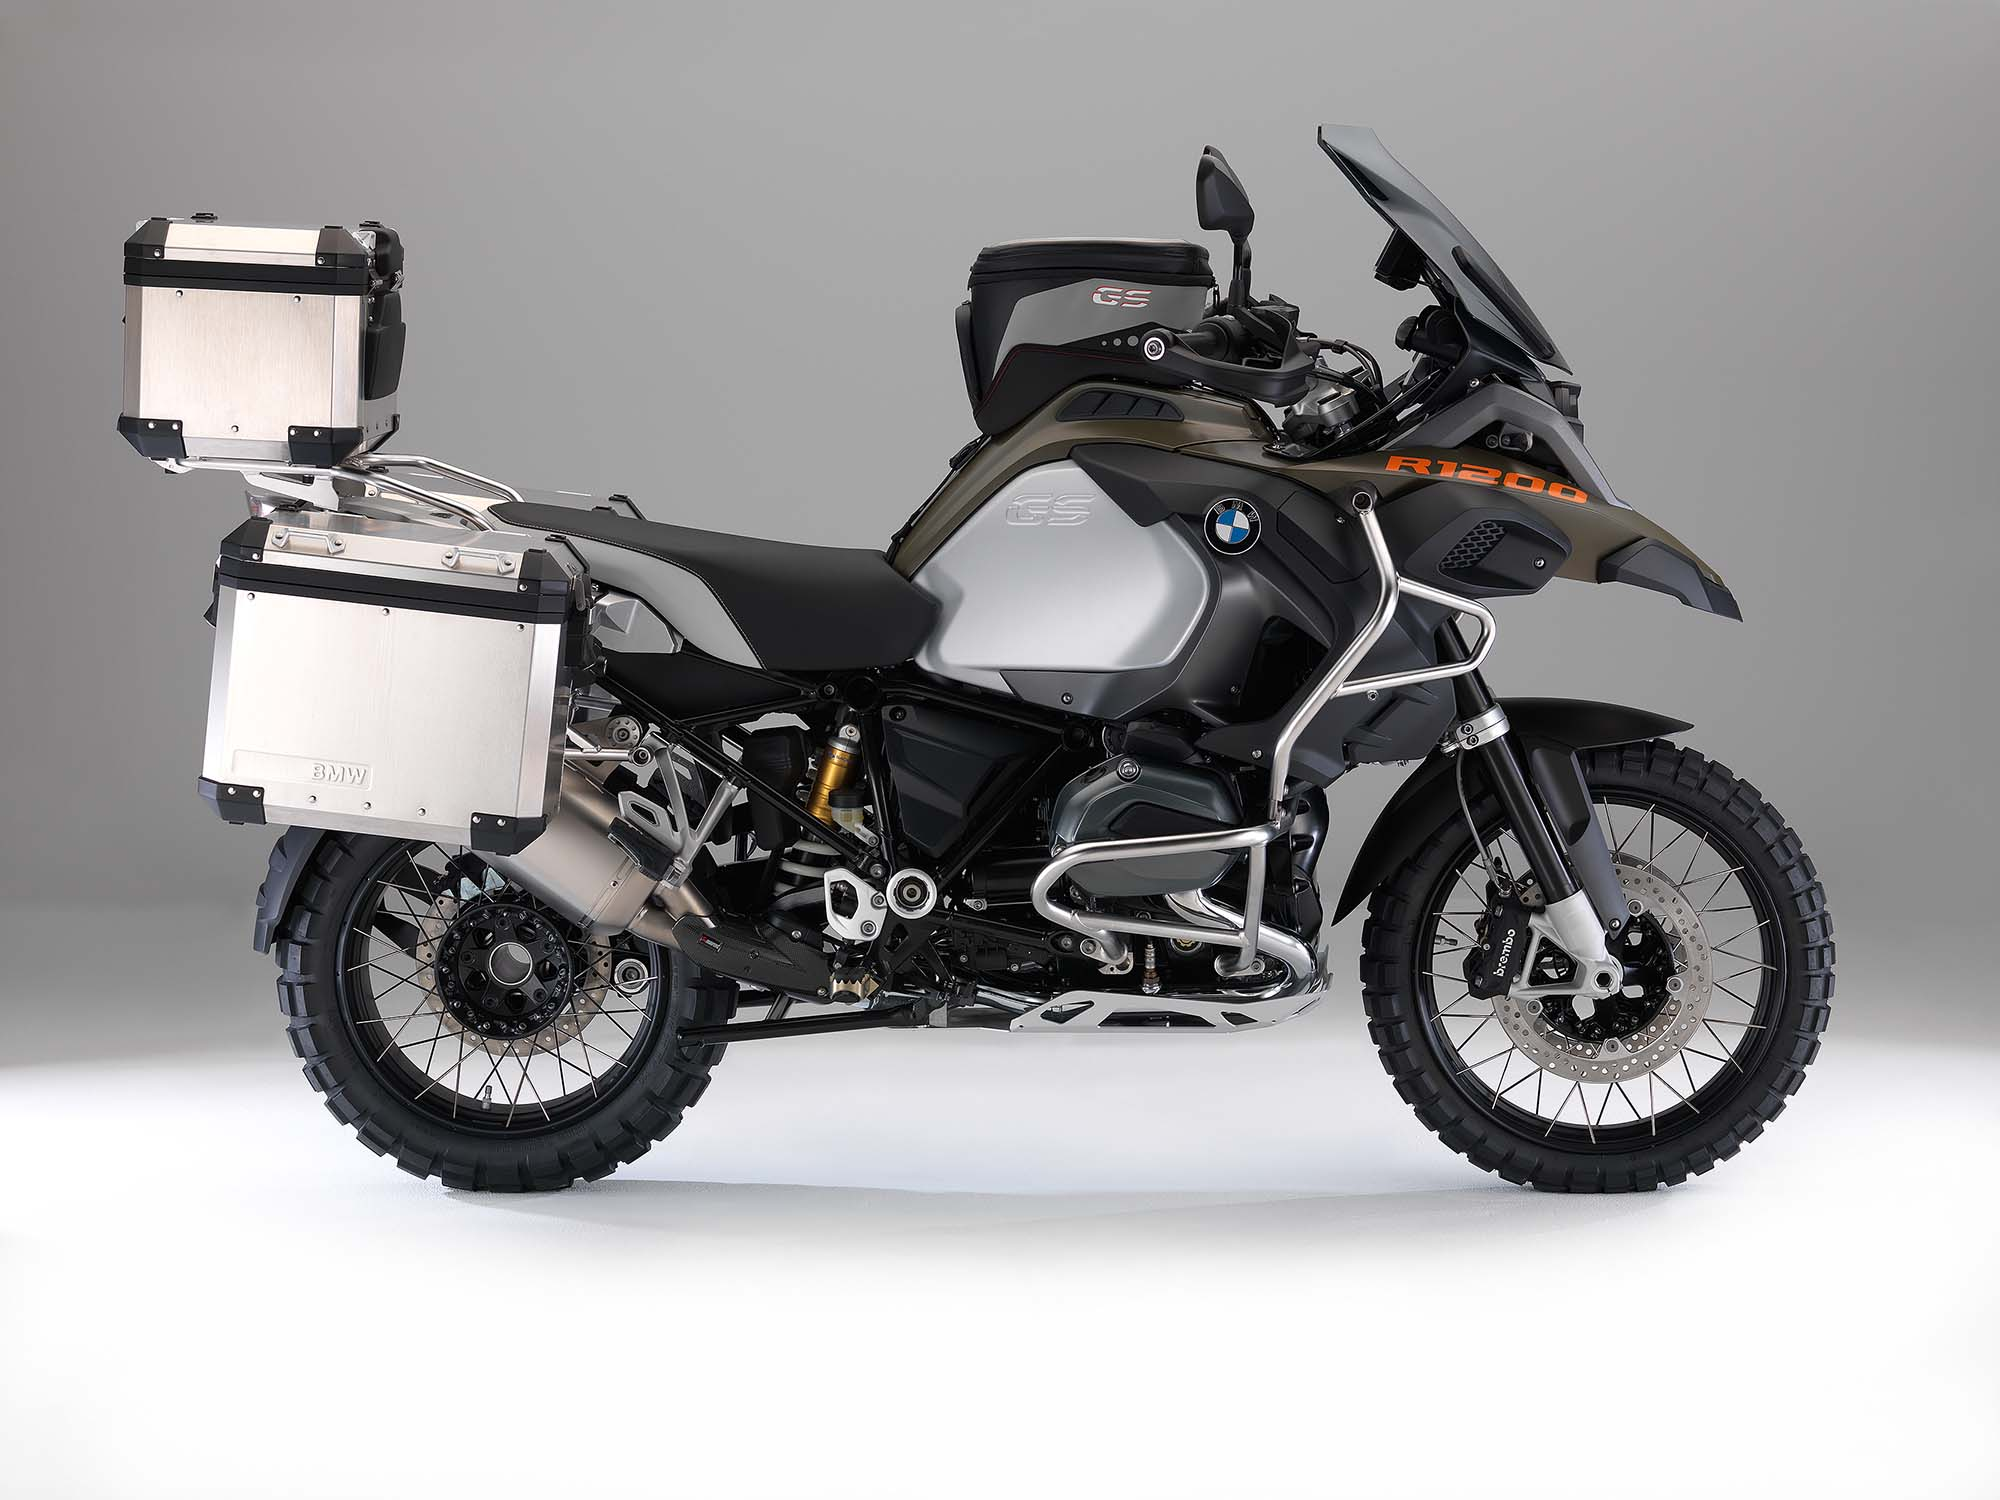 h bmw r 1200 gs adventure 2014 biker spirit magazine. Black Bedroom Furniture Sets. Home Design Ideas